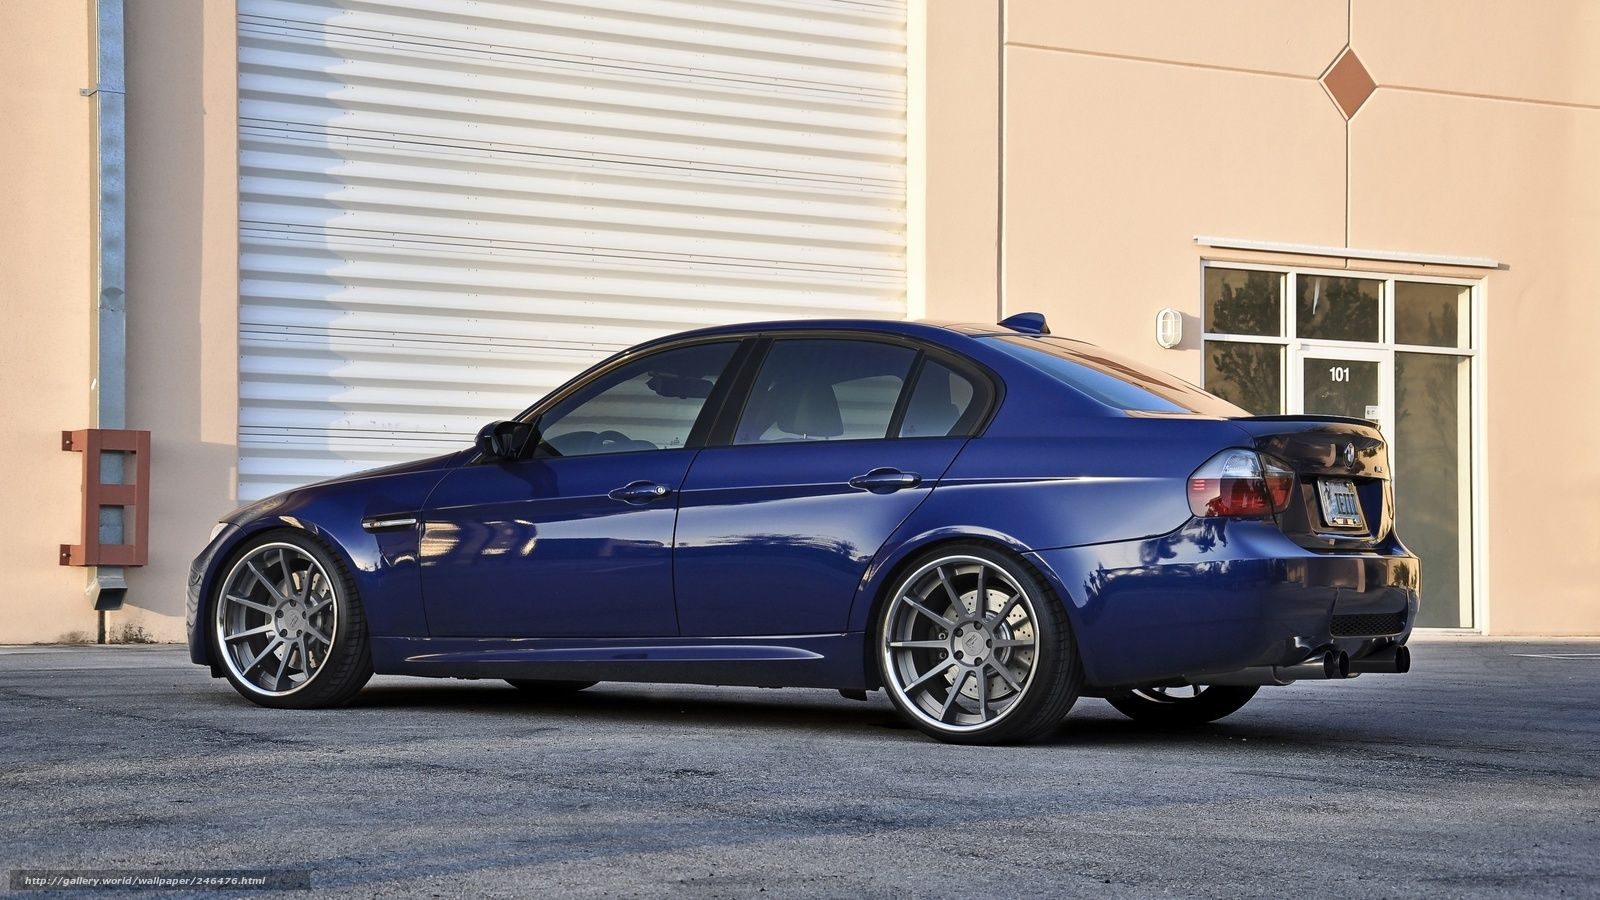 Bmw E90 Wallpapers - Top Free Bmw E90 Backgrounds ...